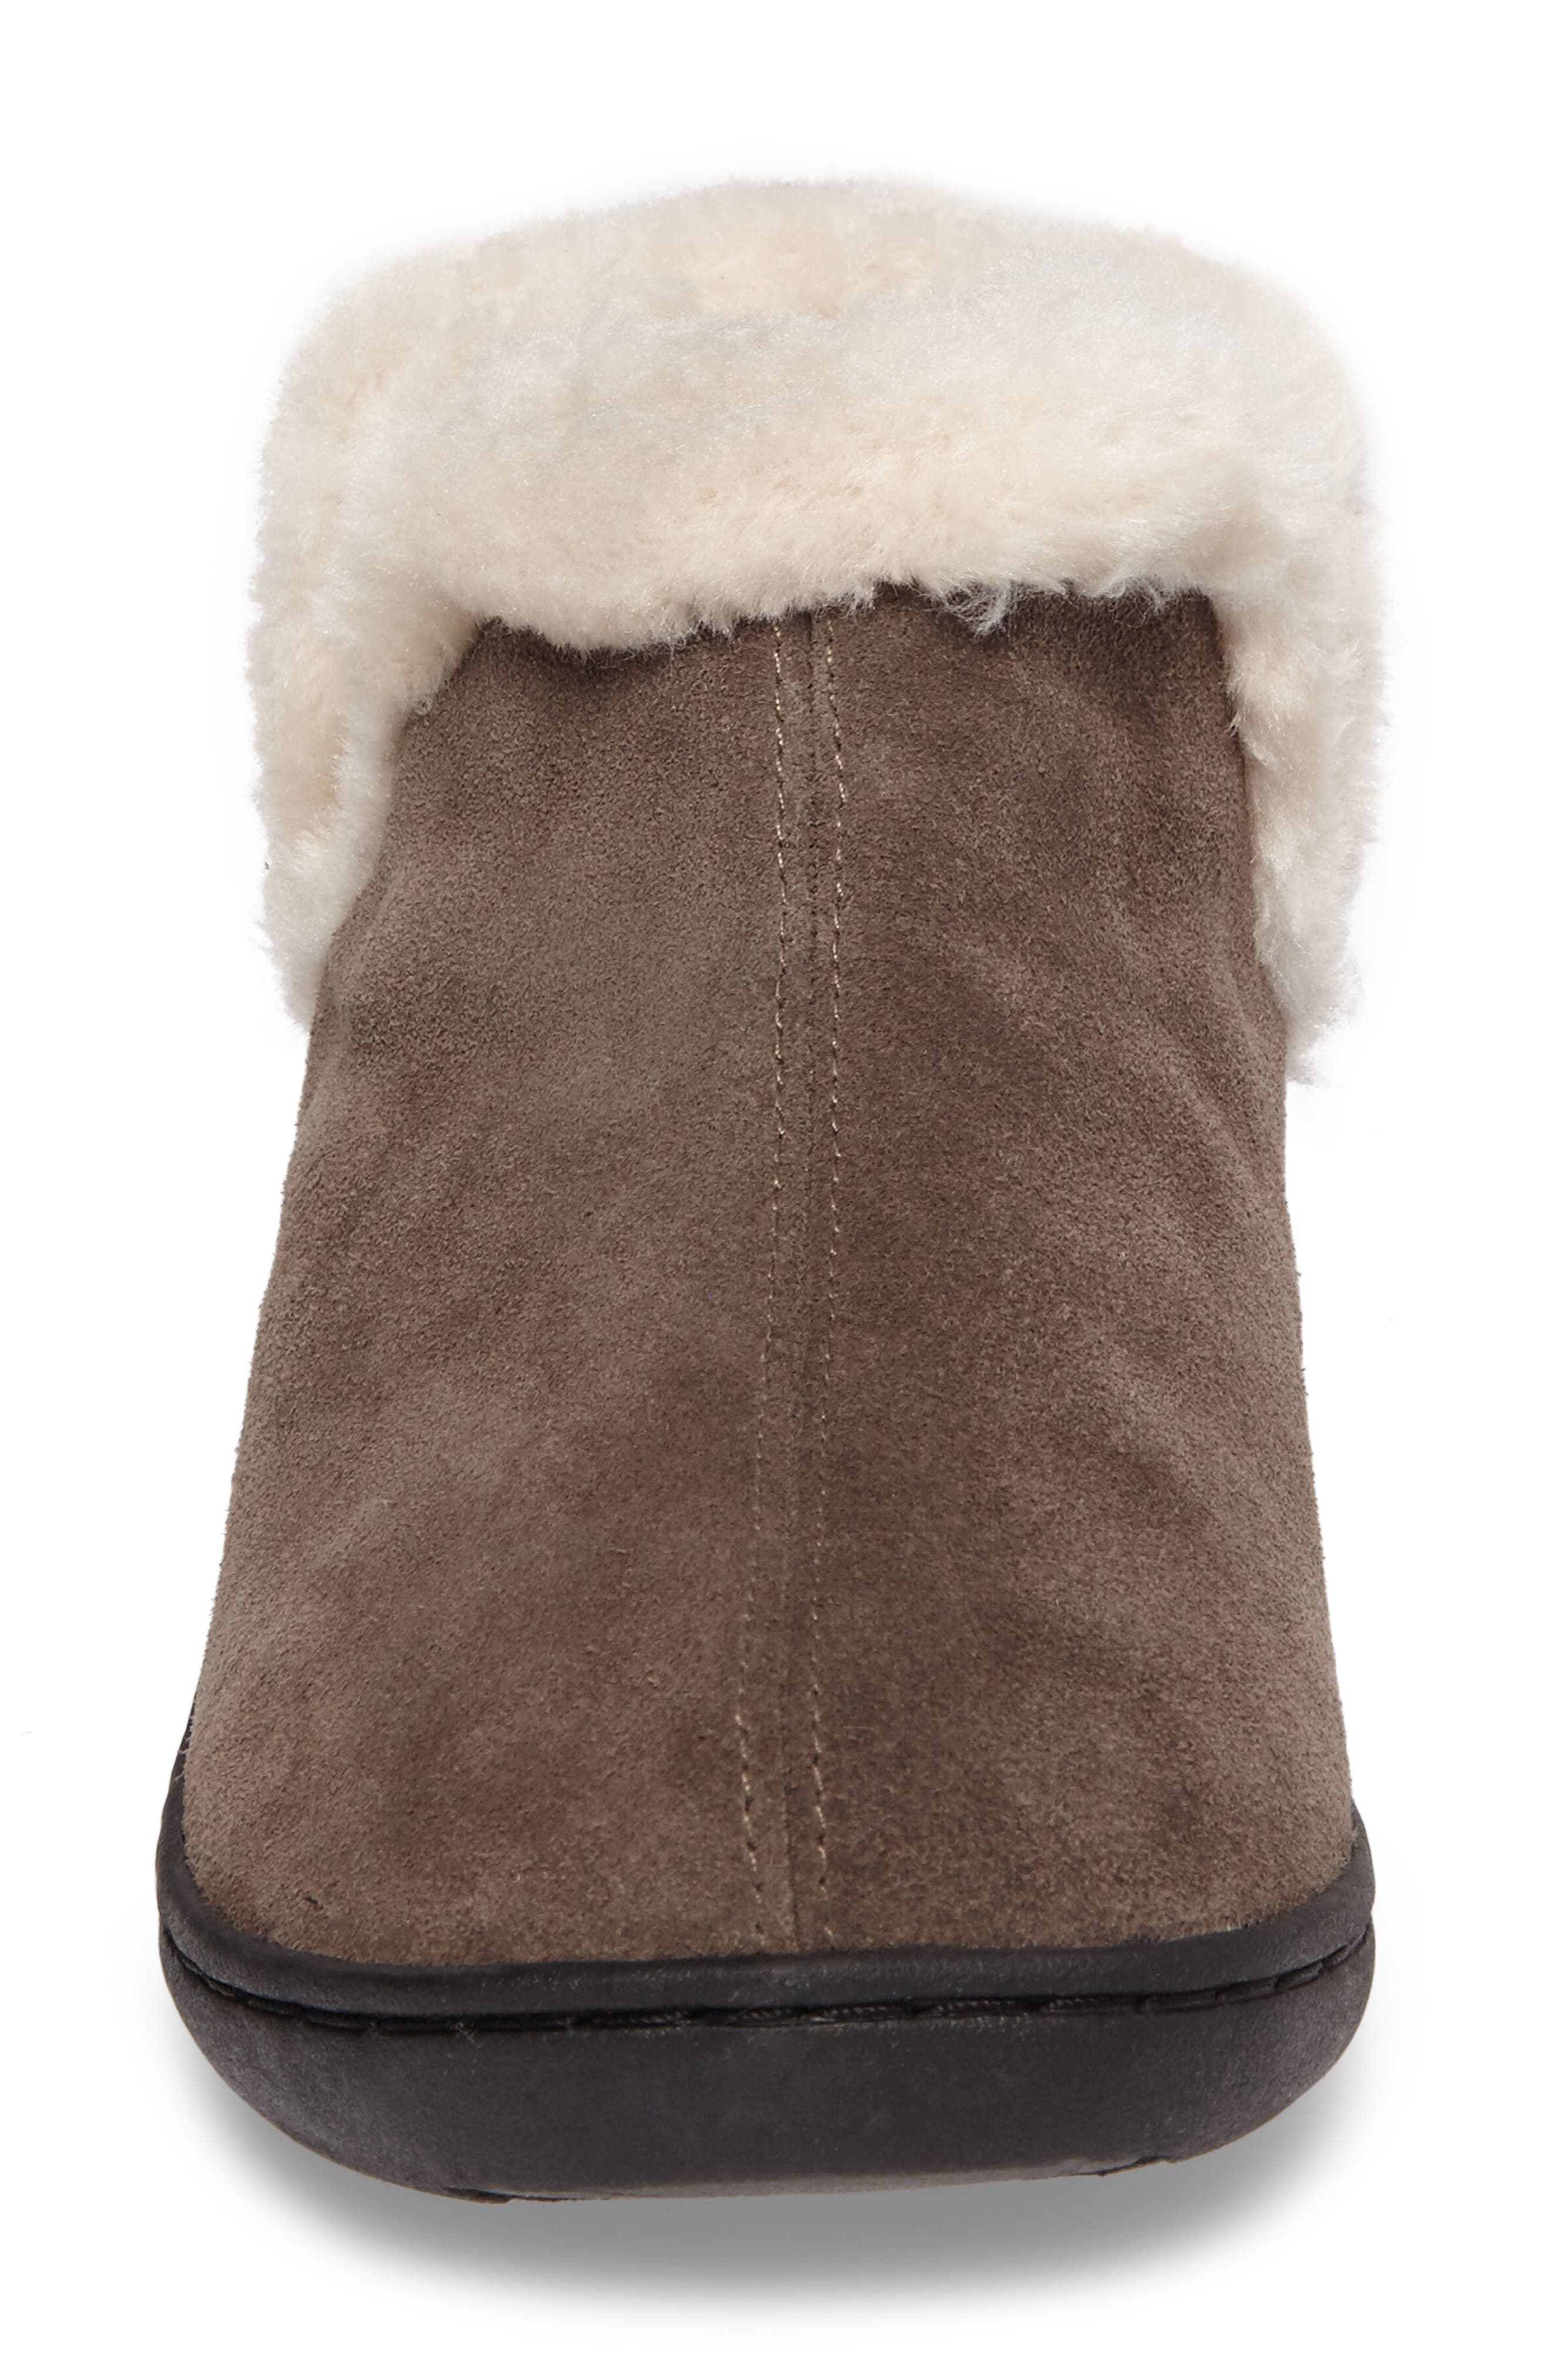 Vallery Bootie Slipper,                             Alternate thumbnail 4, color,                             GRAY SUEDE